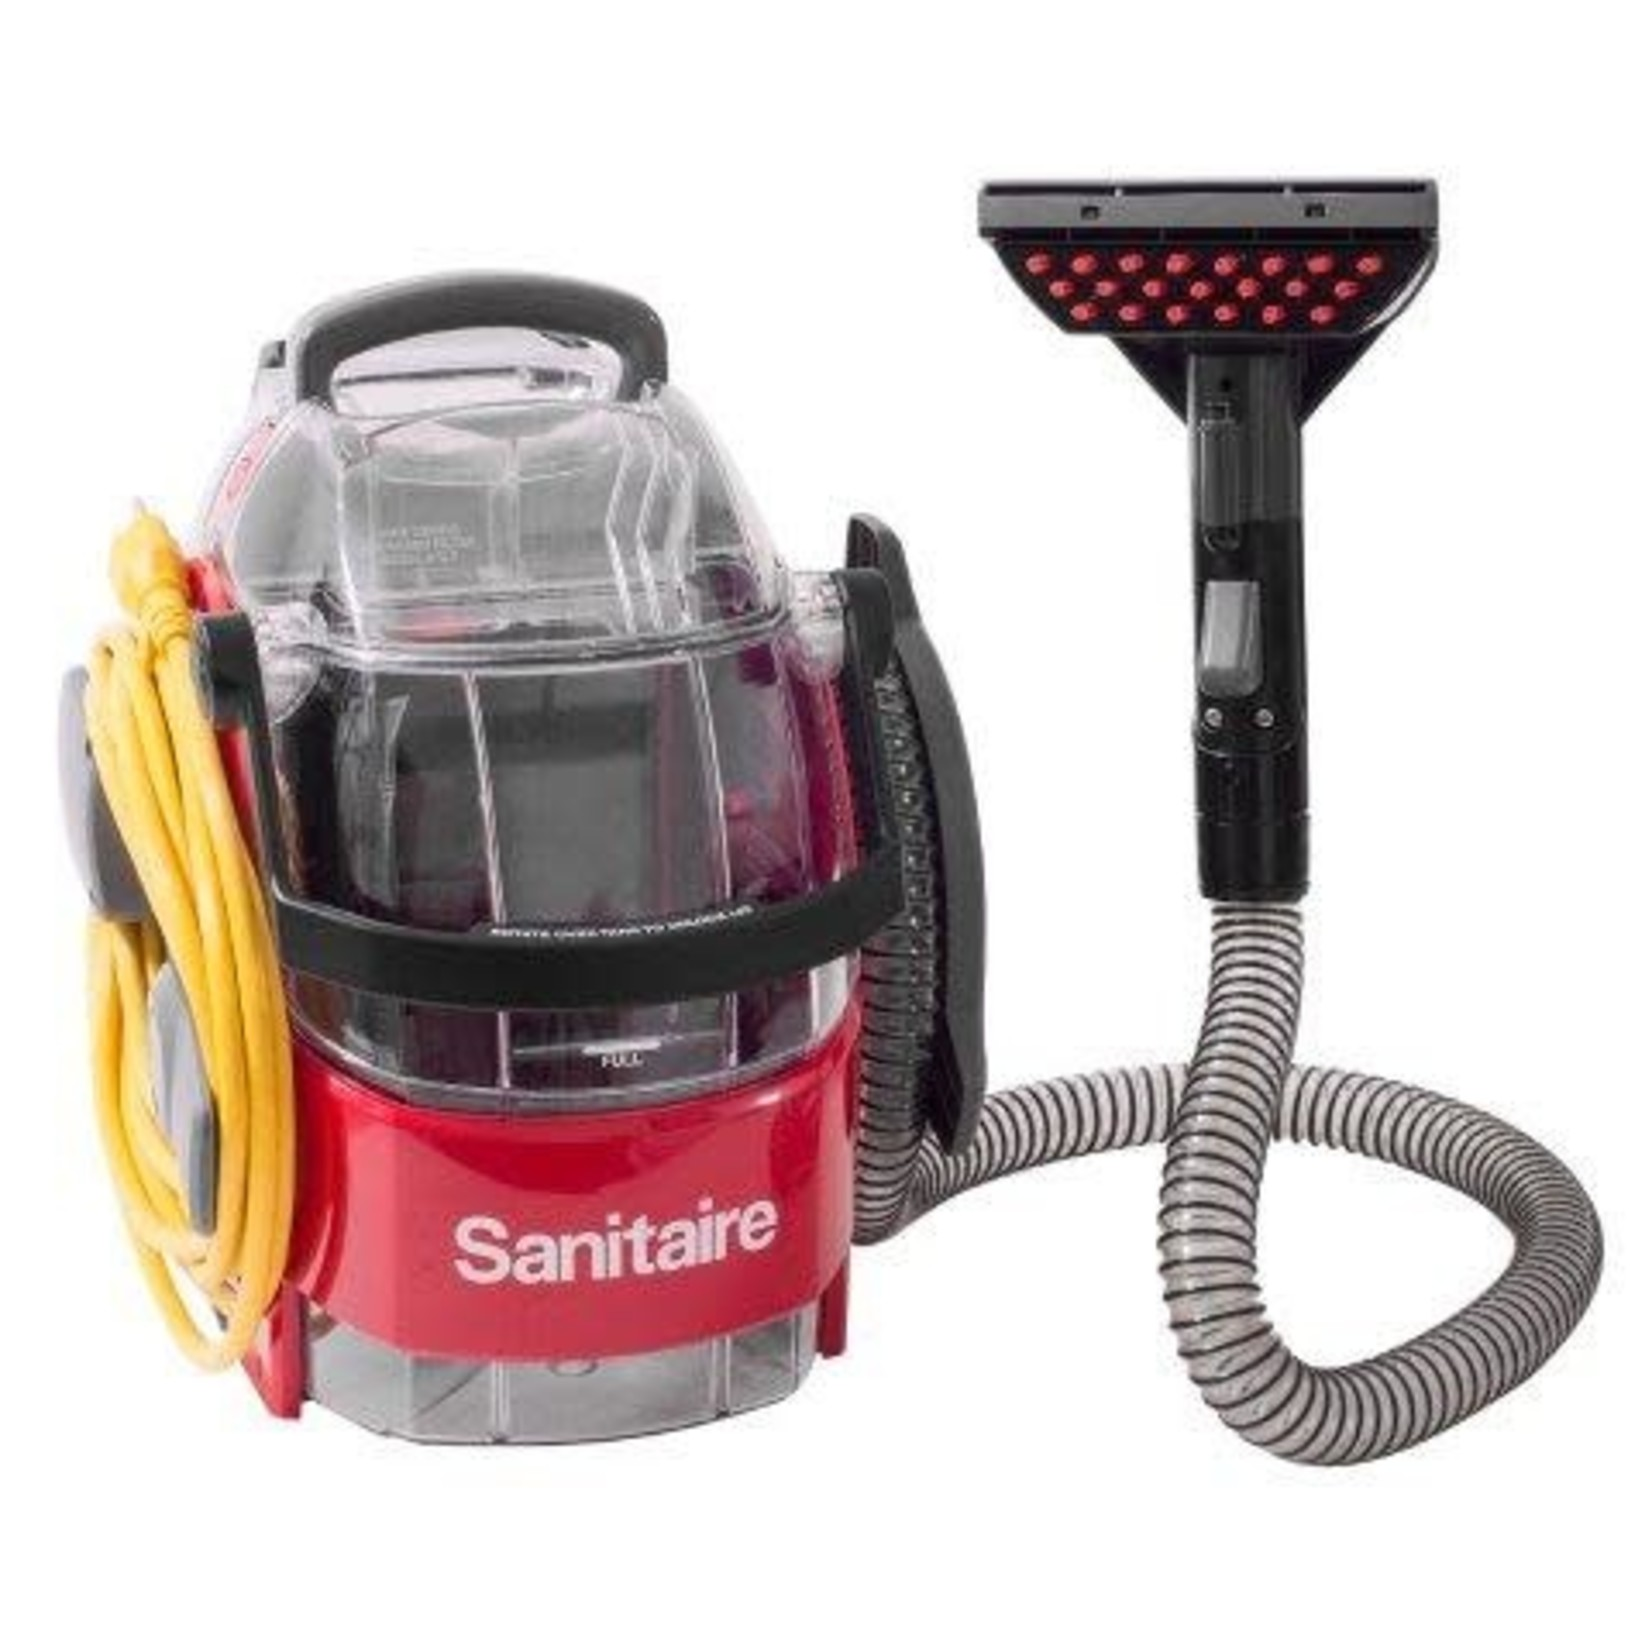 Sanitaire Sanitaire  Restore Spot Cleaner Carpet Extractor